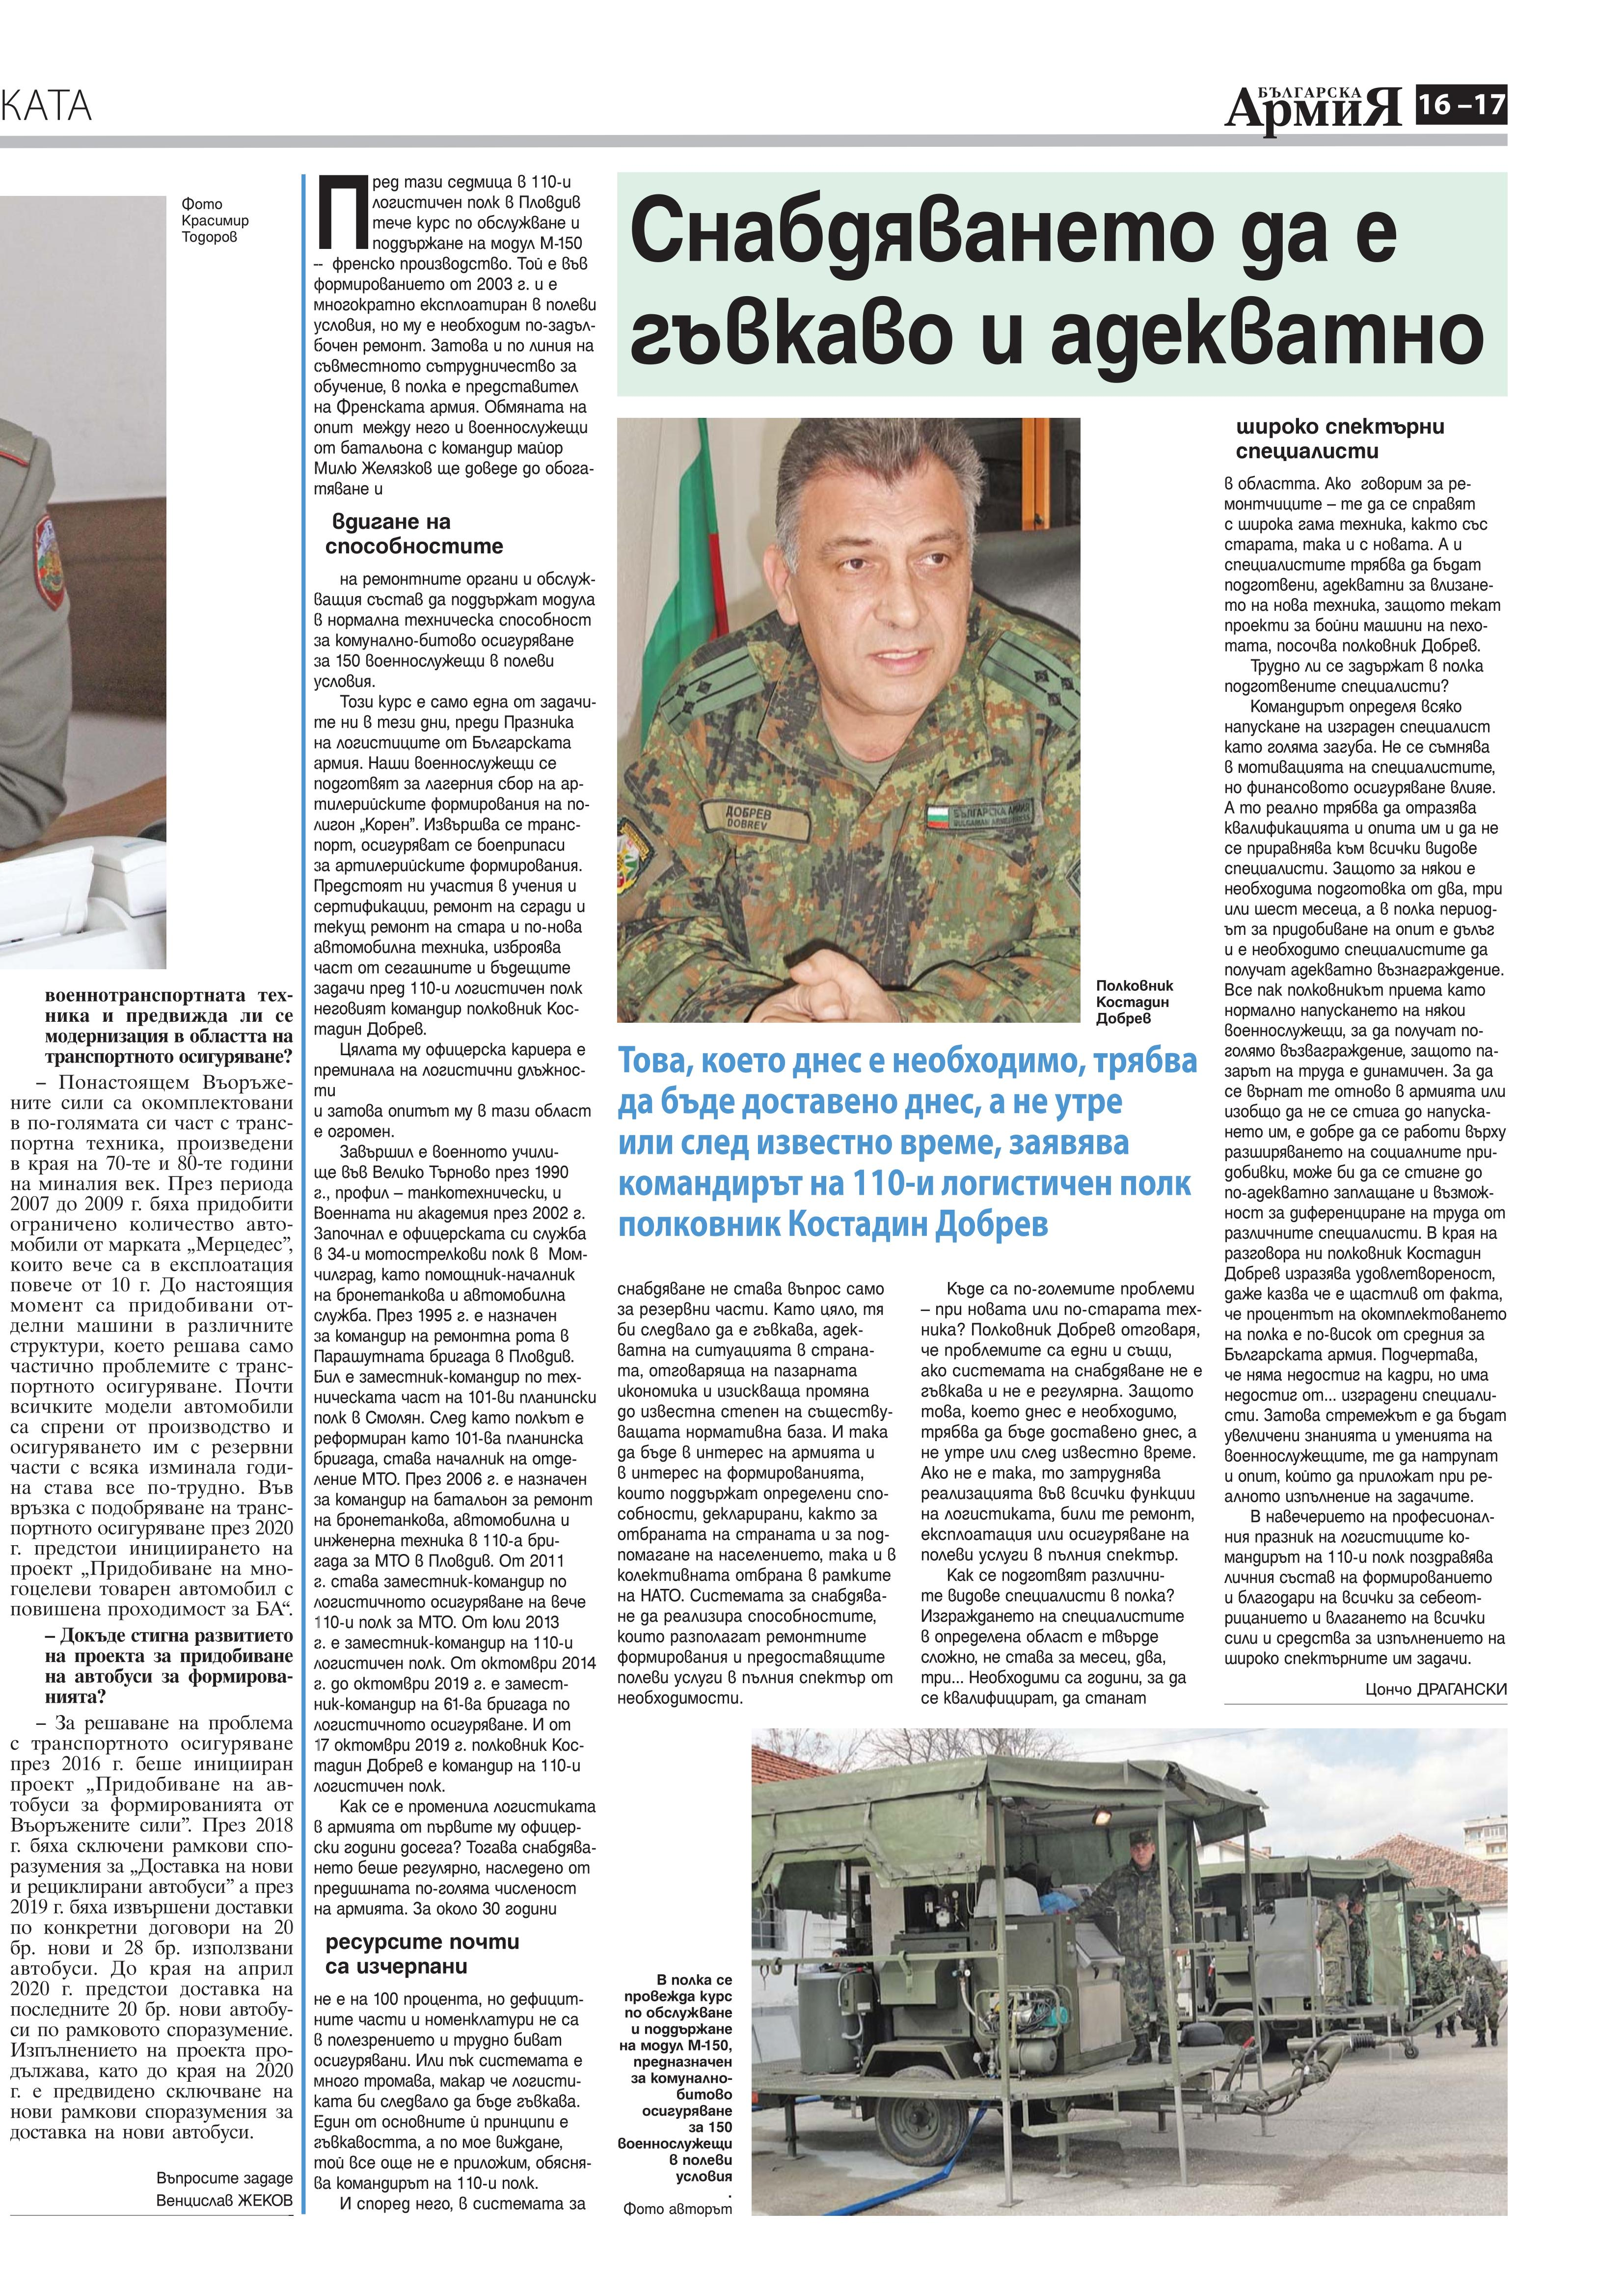 https://www.armymedia.bg/wp-content/uploads/2015/06/17.page1_-128.jpg